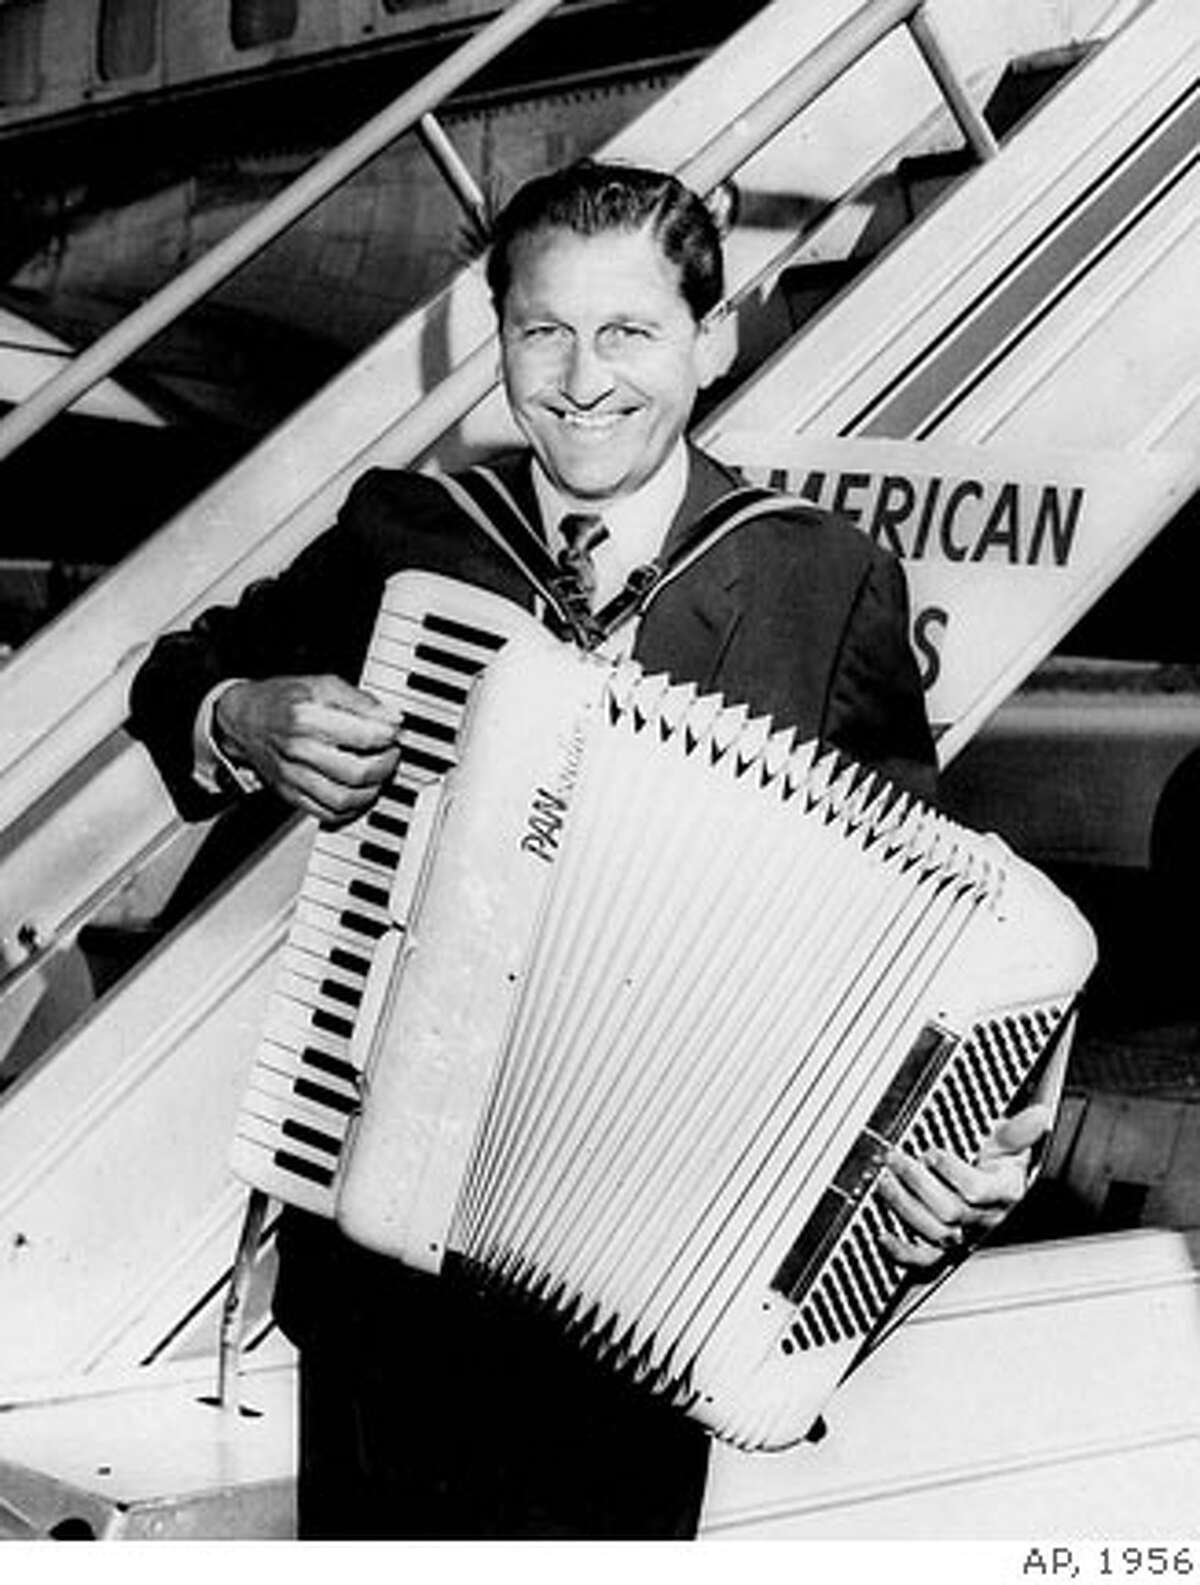 WELK/C/18AUG99/DD/AP-Bandleader Lawrence Welk arrives at Idlewild Airport aboard an Amerian Airlines nonstop flagship with his favorite instrument, ready to pour out some music, May 29,1956. Welk had reason to smile: he was selected